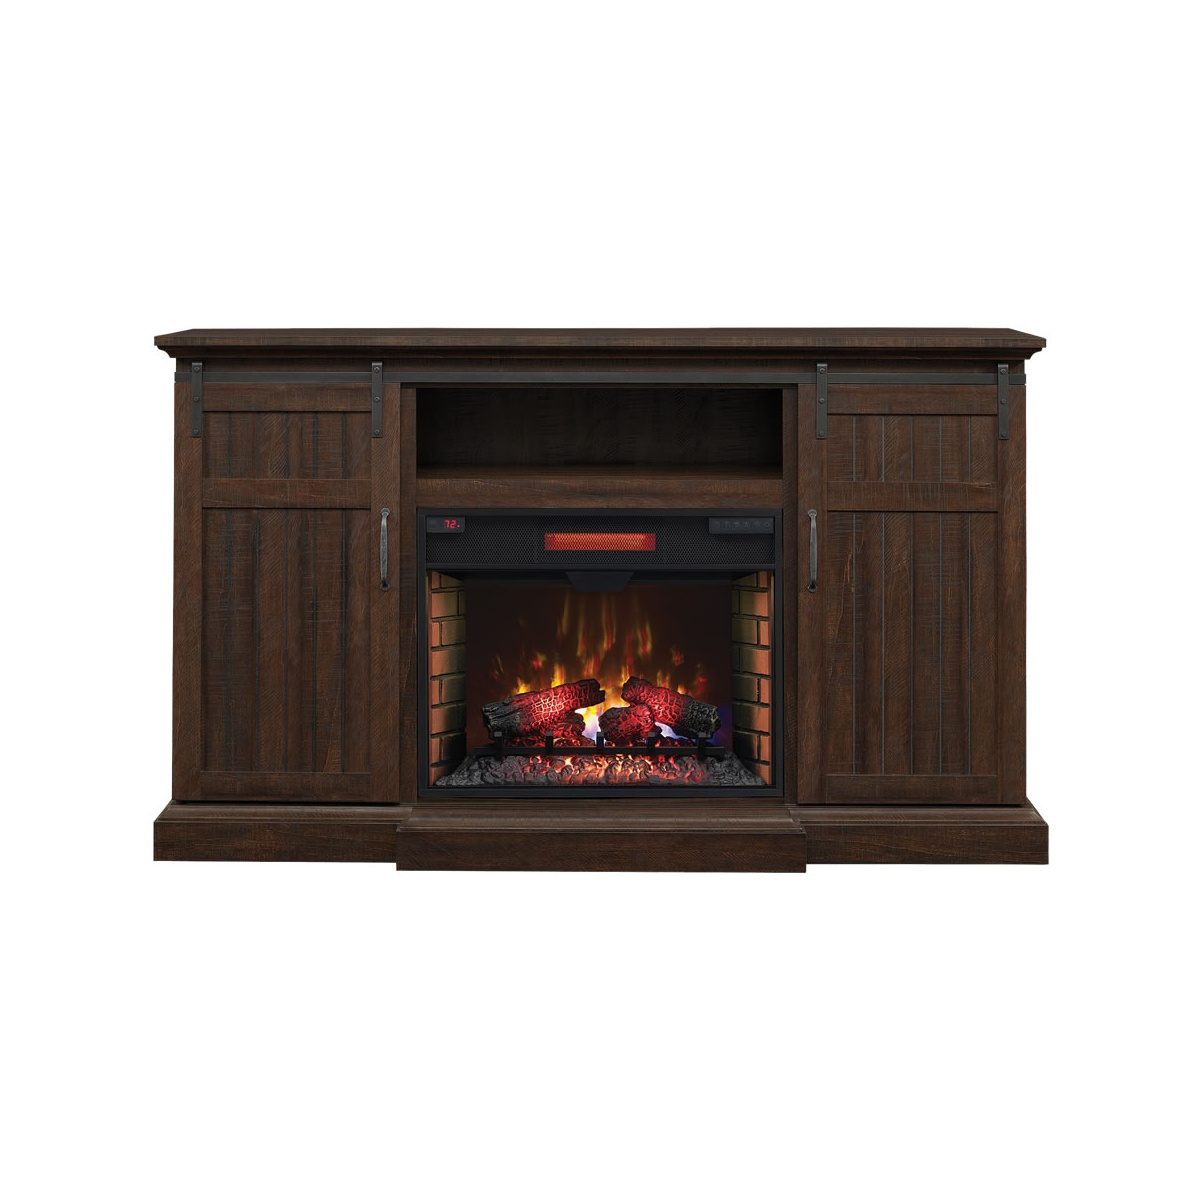 electric fireplace media cabinet with sliding barn doors in espresso wood finish